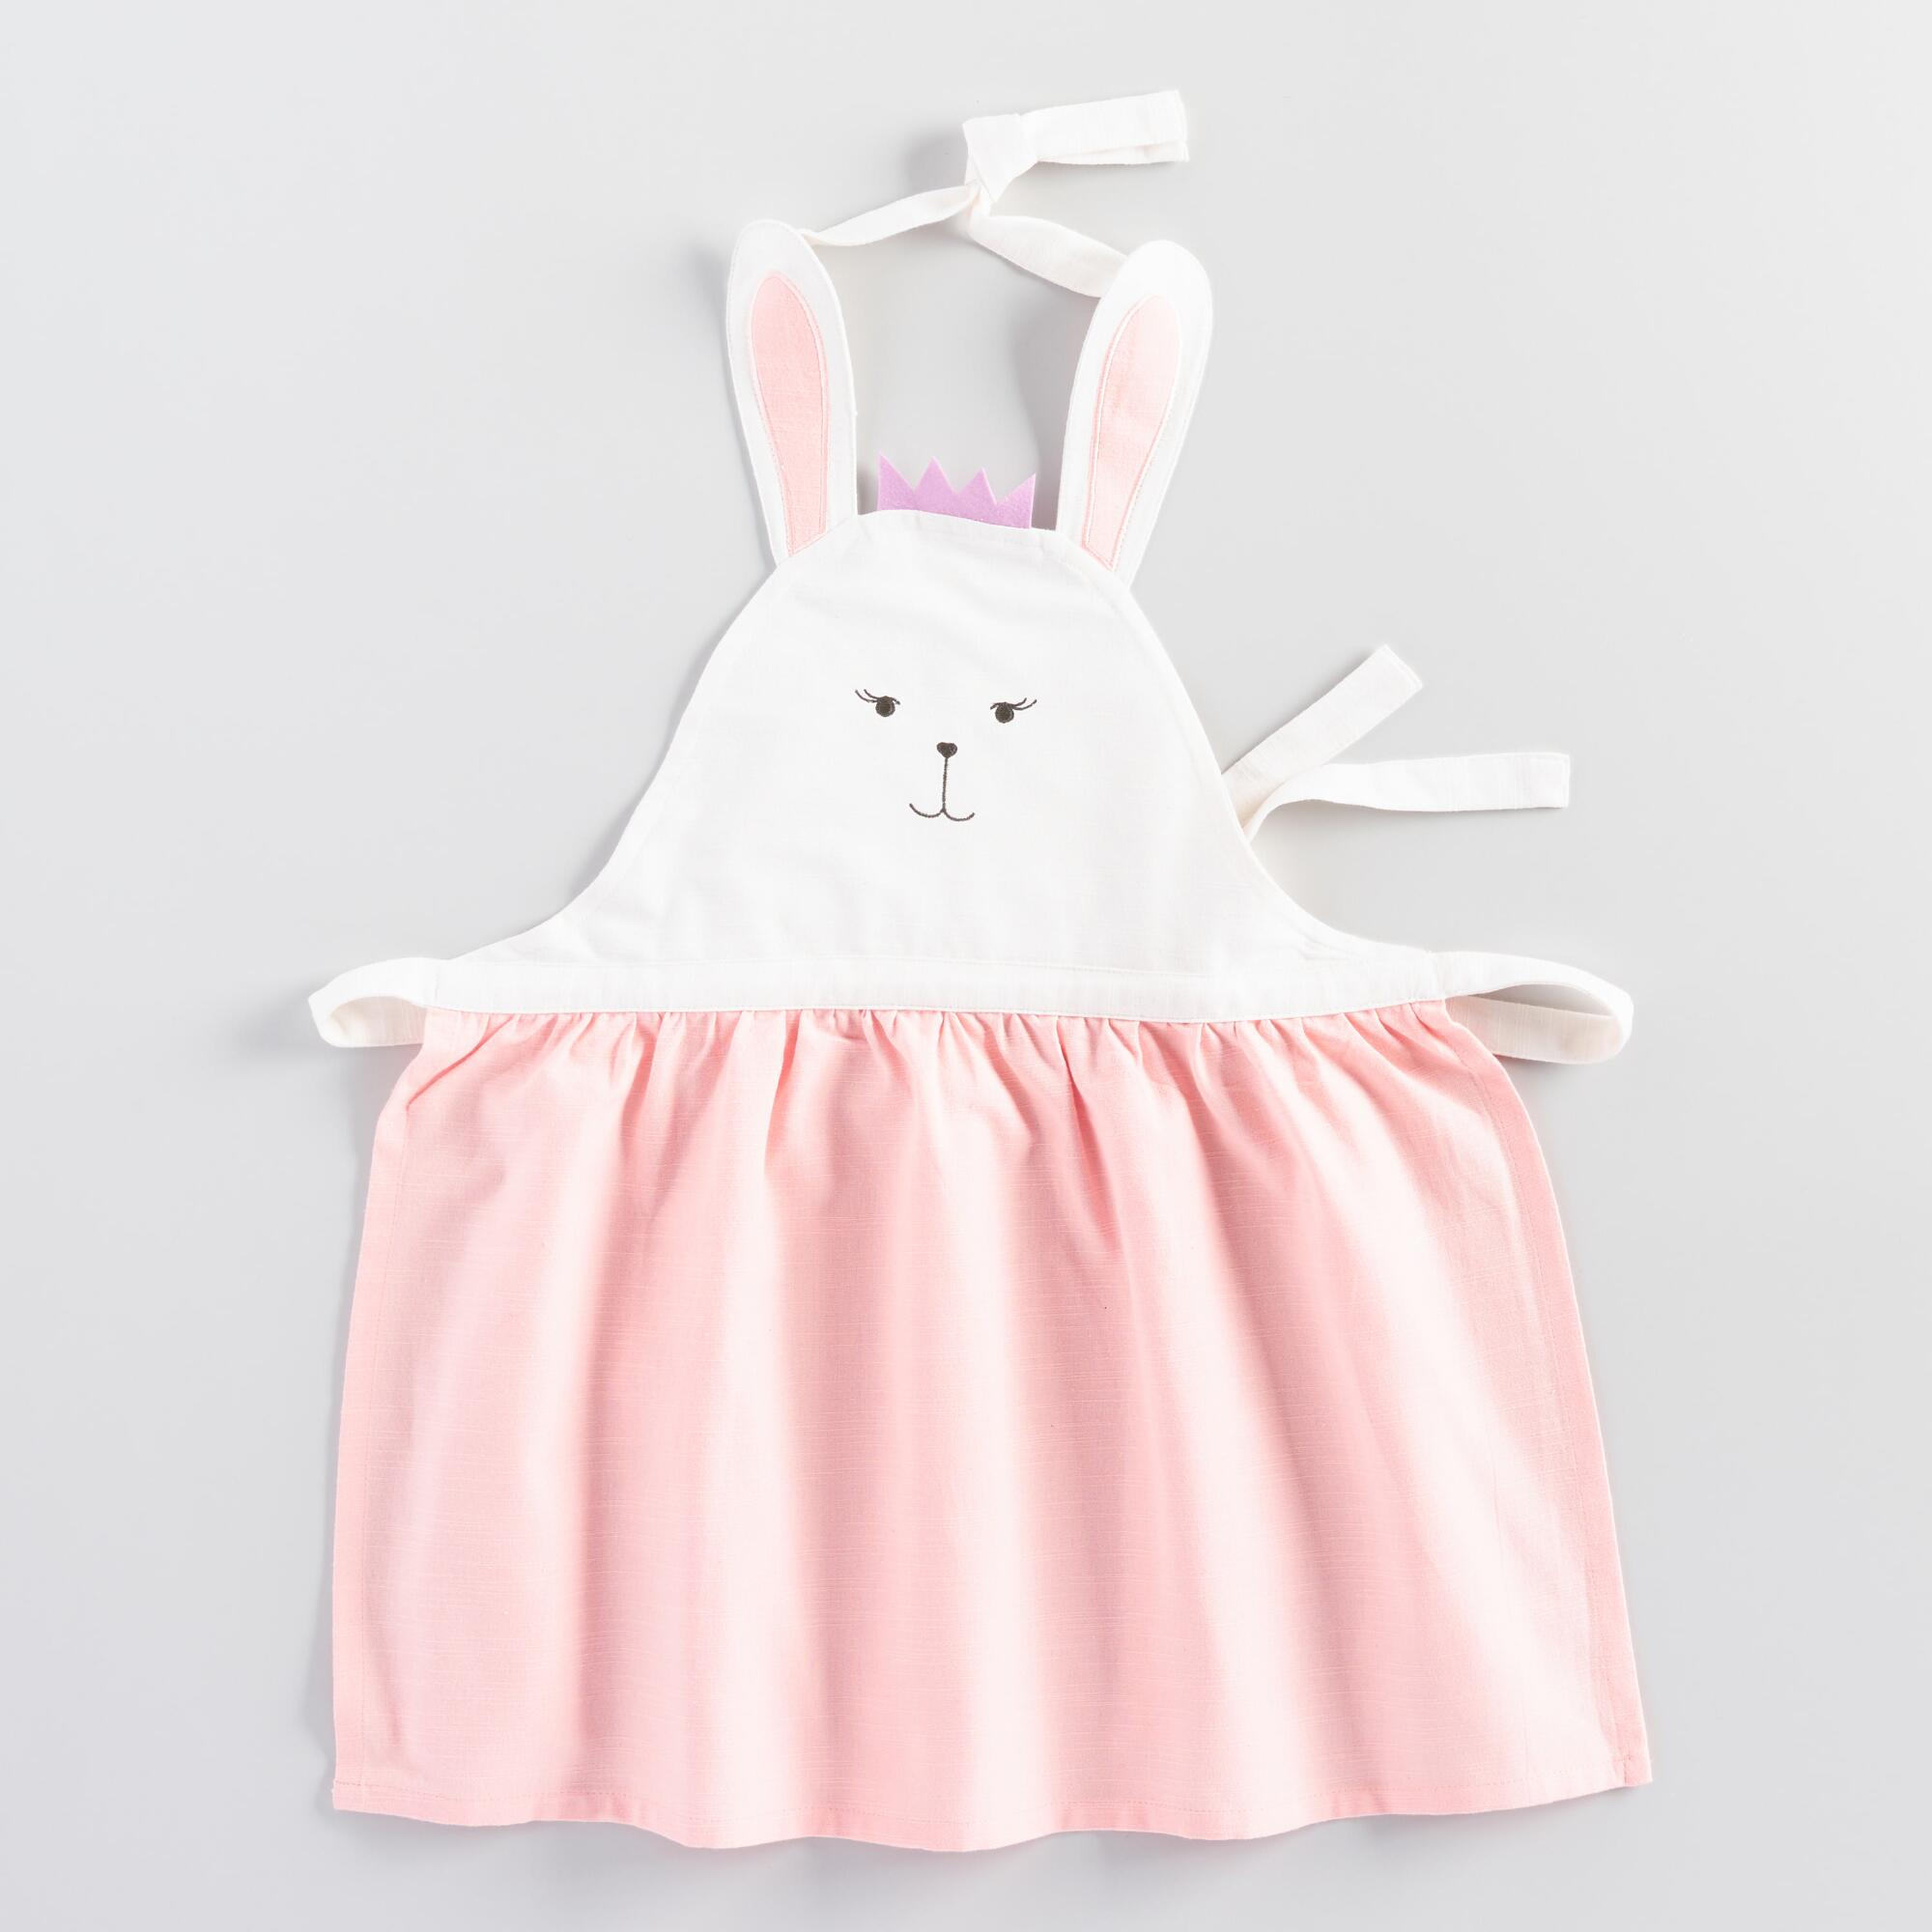 Vintage Aprons, Retro Aprons, Old Fashioned Aprons & Patterns Kids Pink Bunny Apron - Cotton by World Market $12.99 AT vintagedancer.com